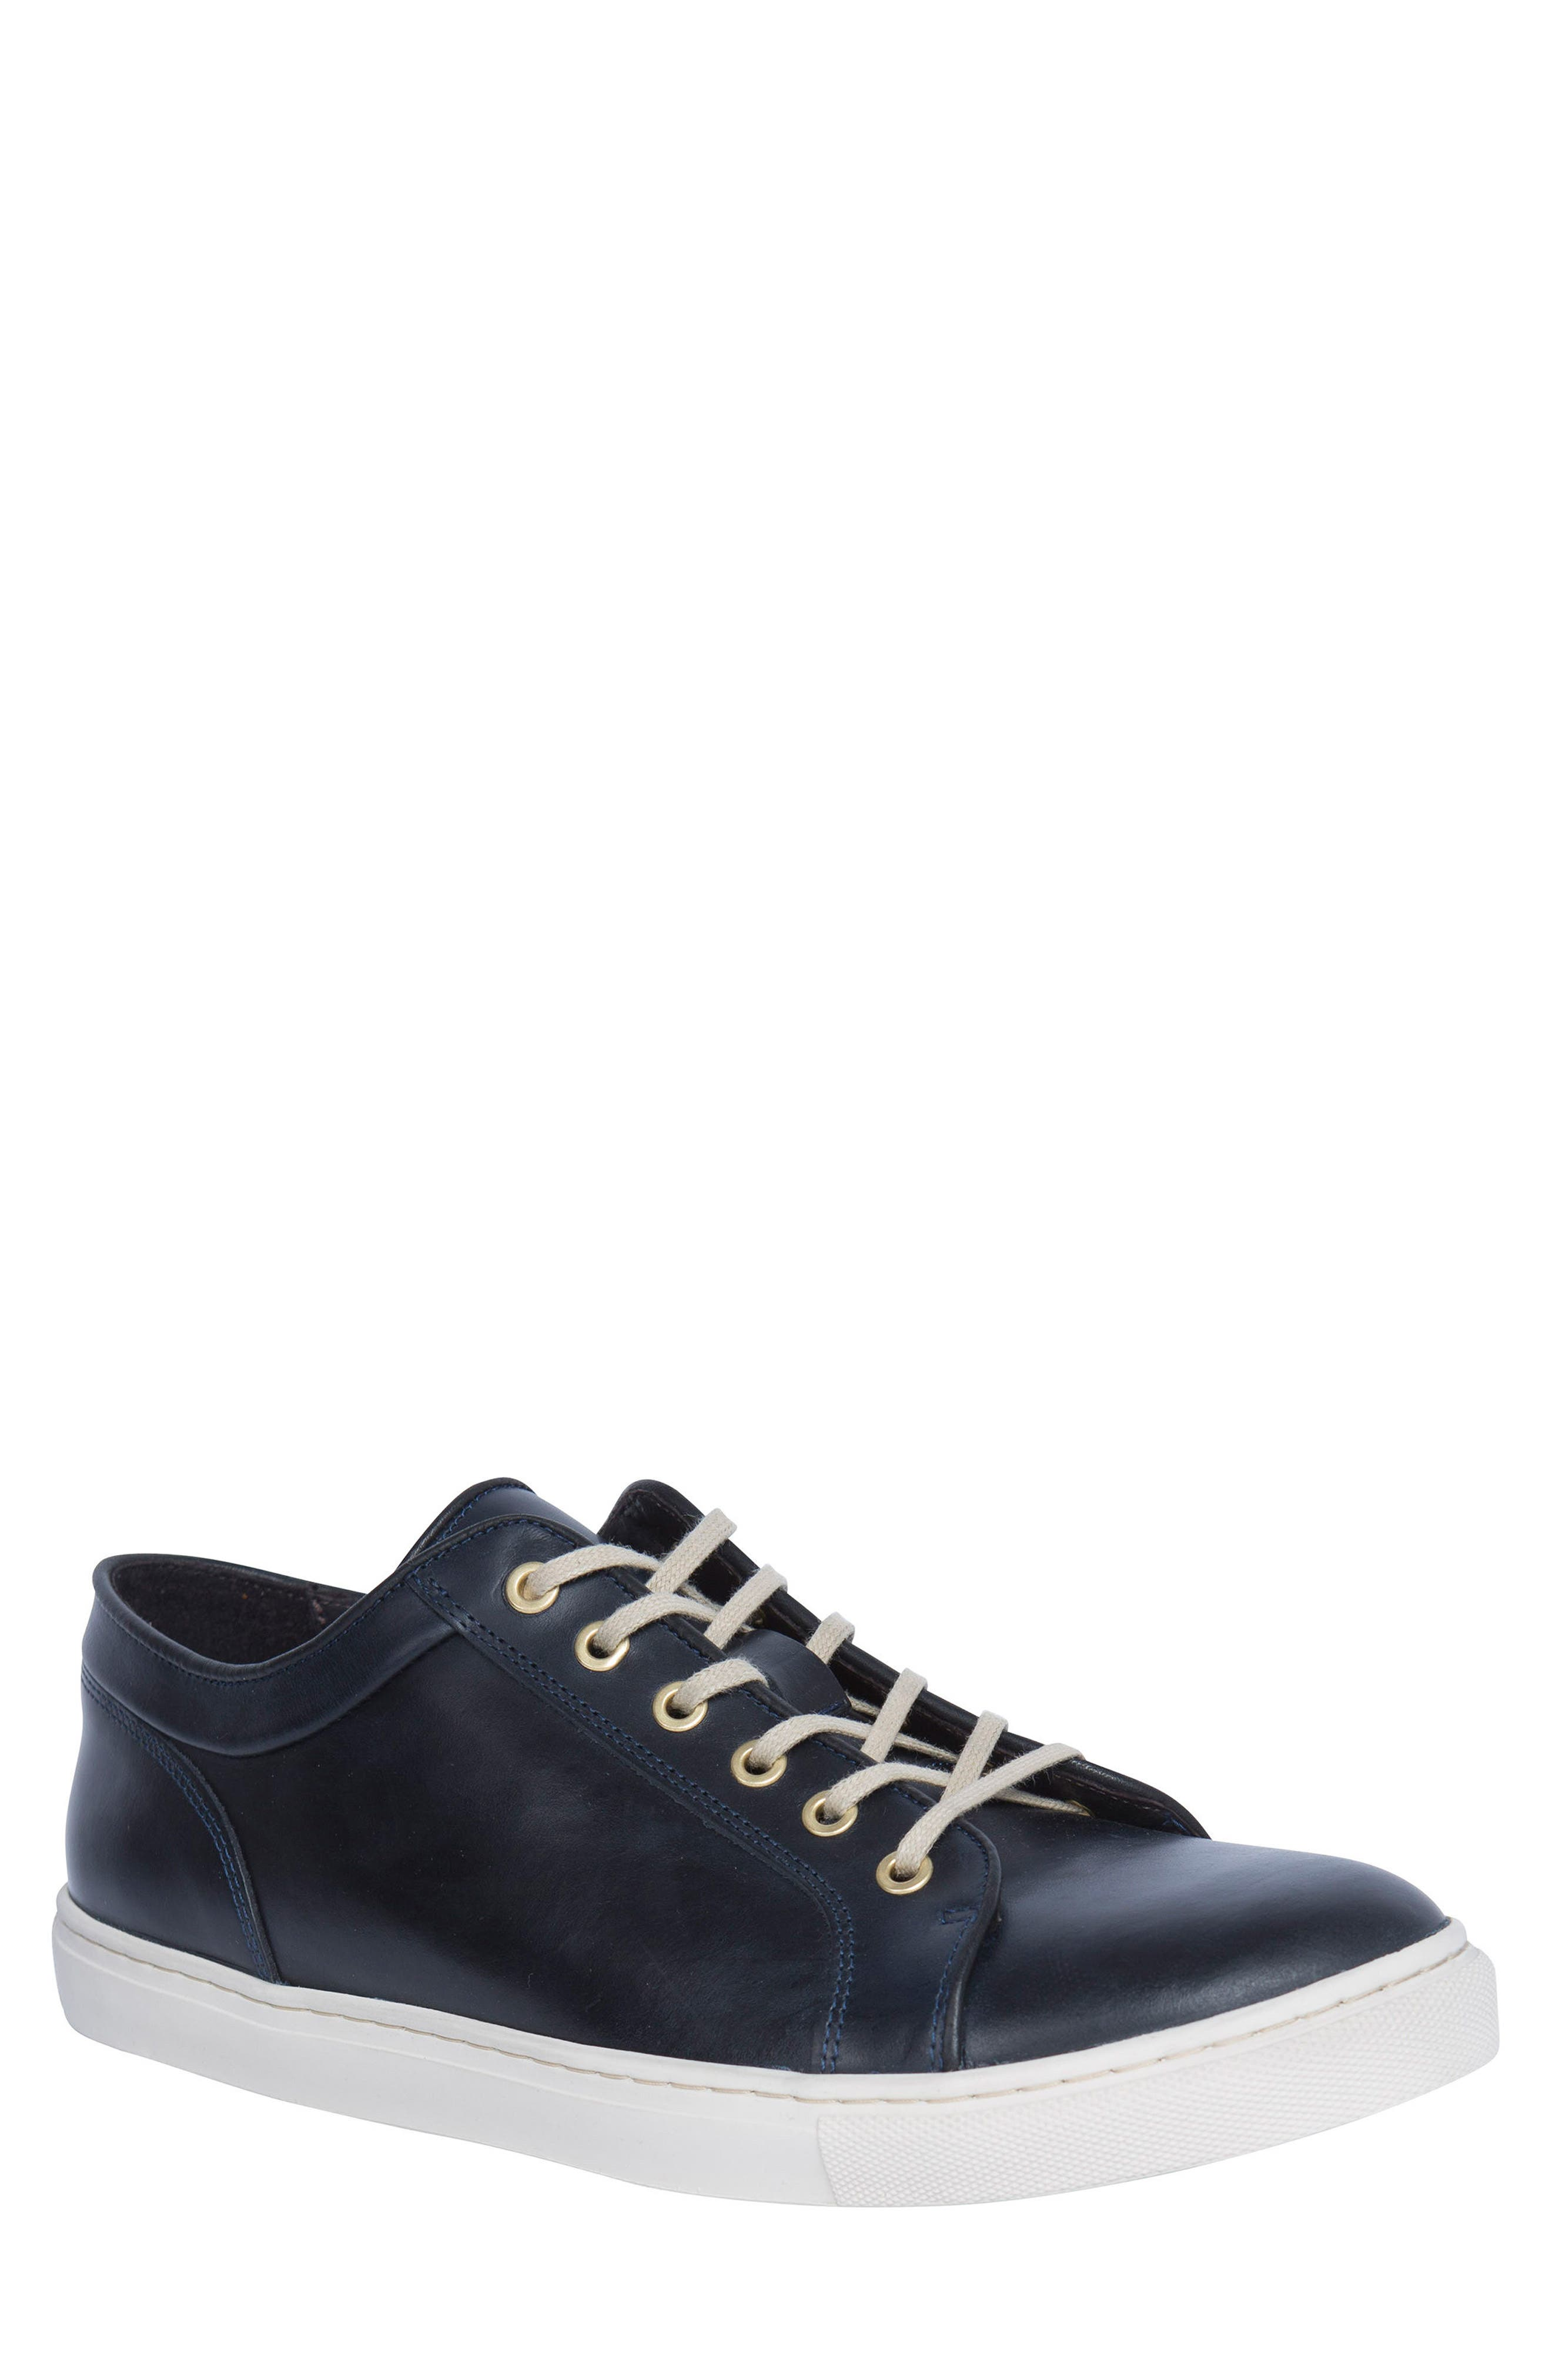 Alternate Image 1 Selected - Rodd & Gunn Aria Sneaker (Men)